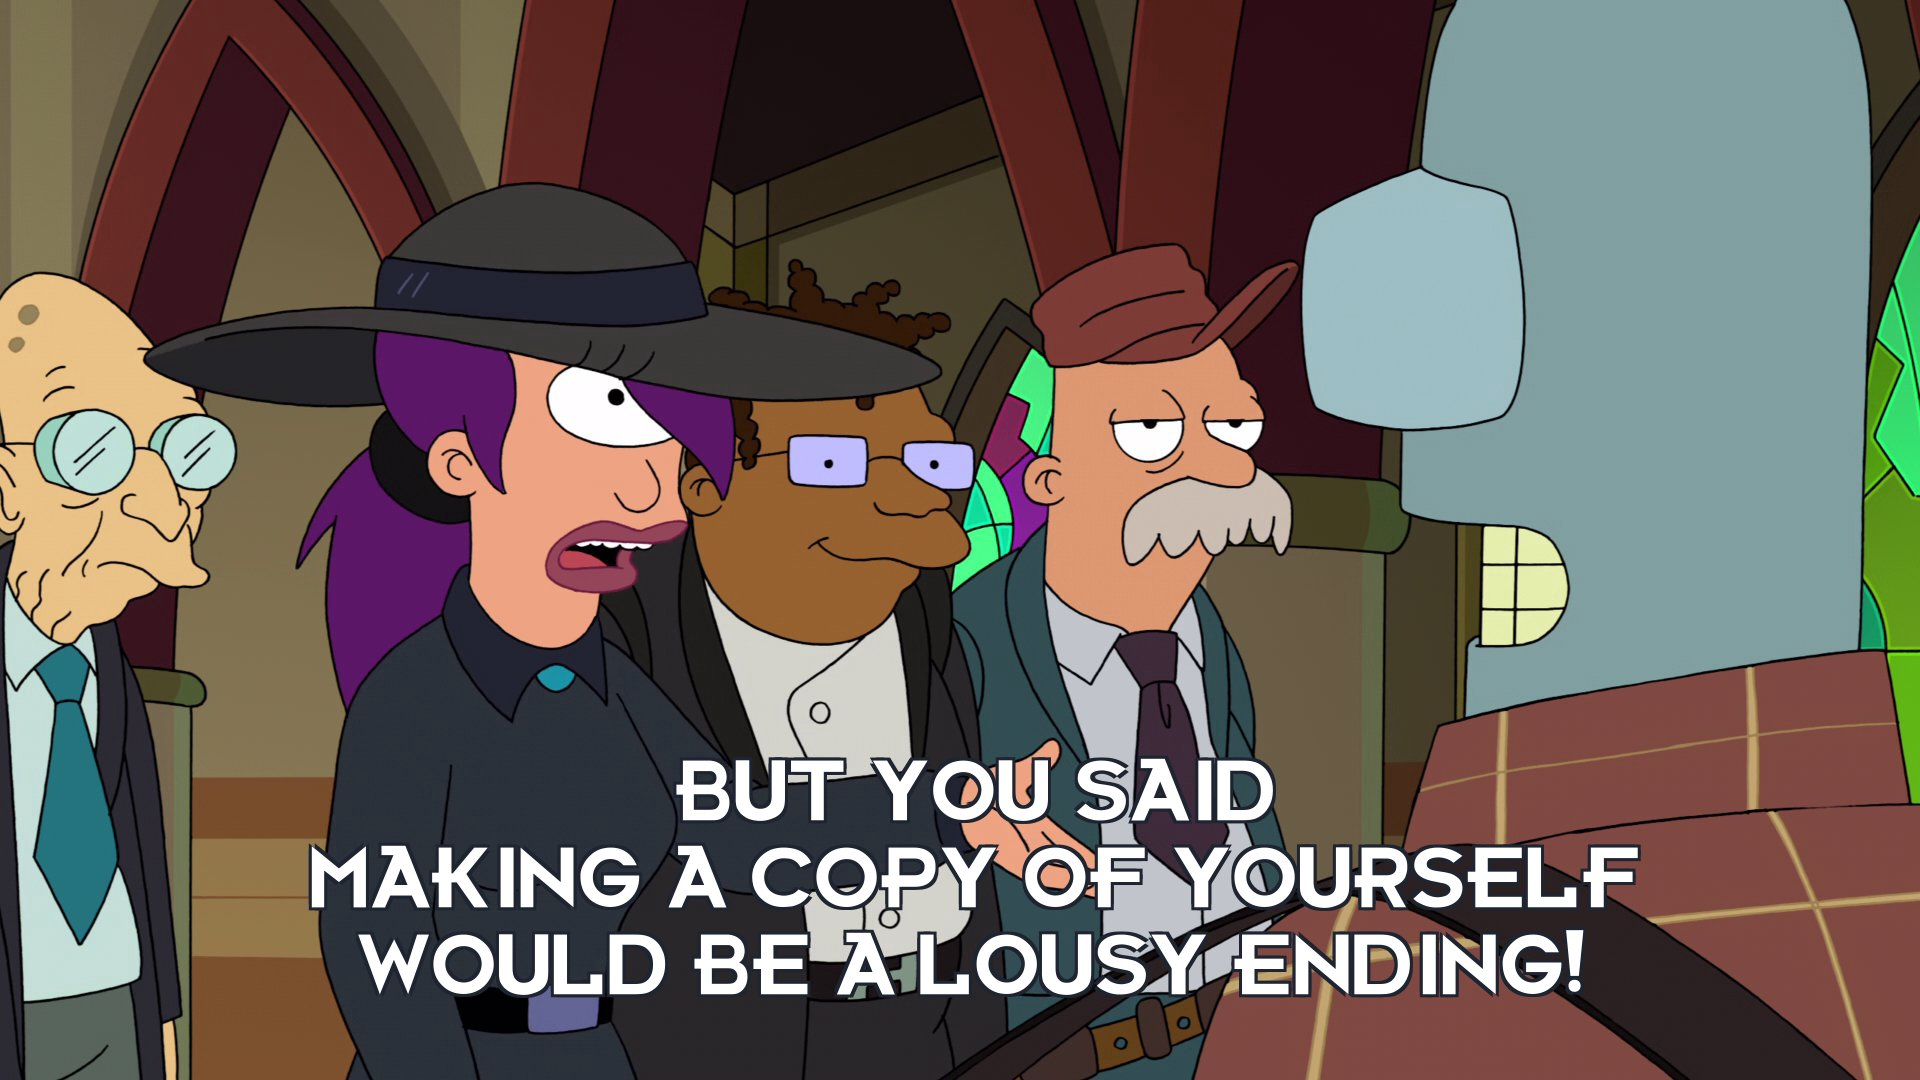 Turanga Leela: But you said making a copy of yourself would be a lousy ending!